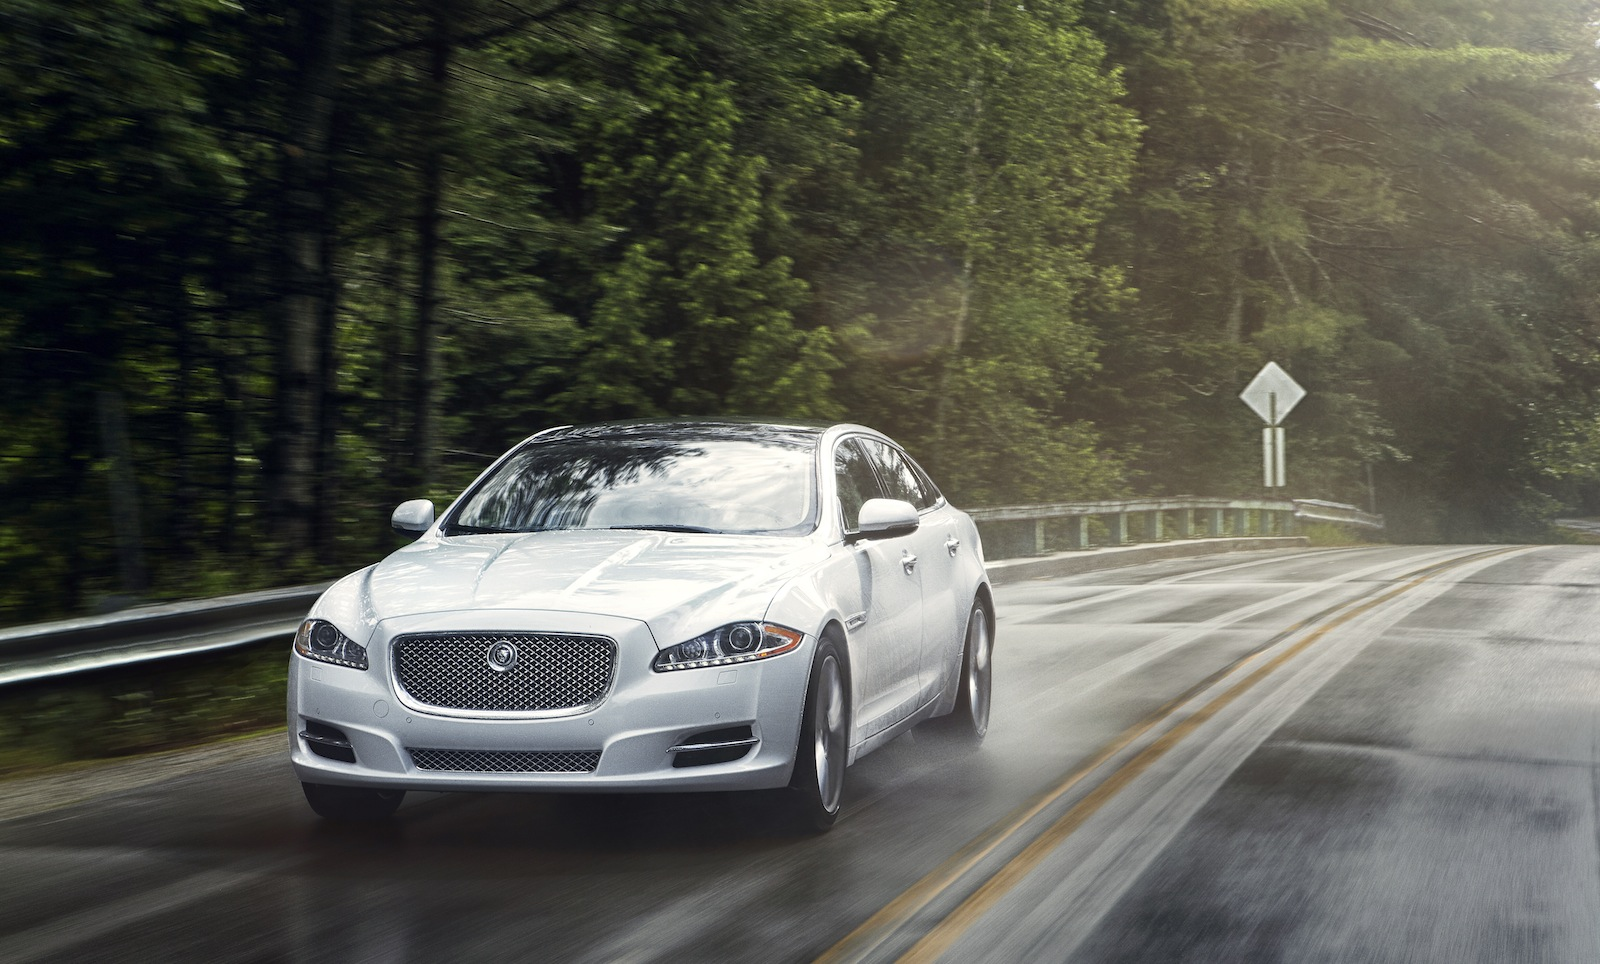 2013 Jaguar Xf Preview New Engines And All Wheel Drive Enhance